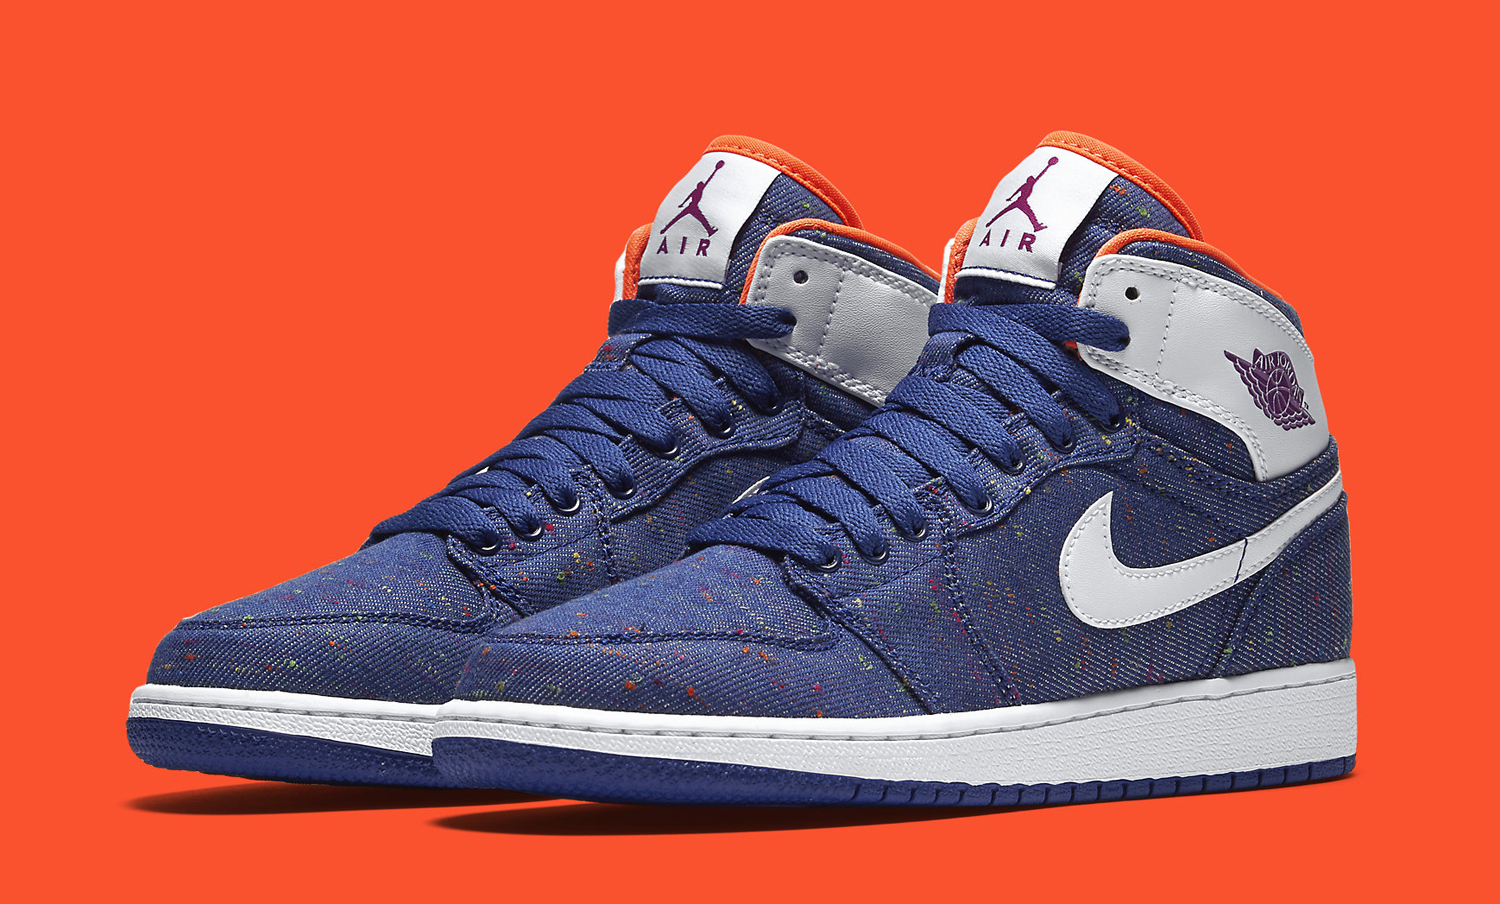 reputable site 41938 7f821 Air Jordan 1s Get a Denim Makeover | Sole Collector